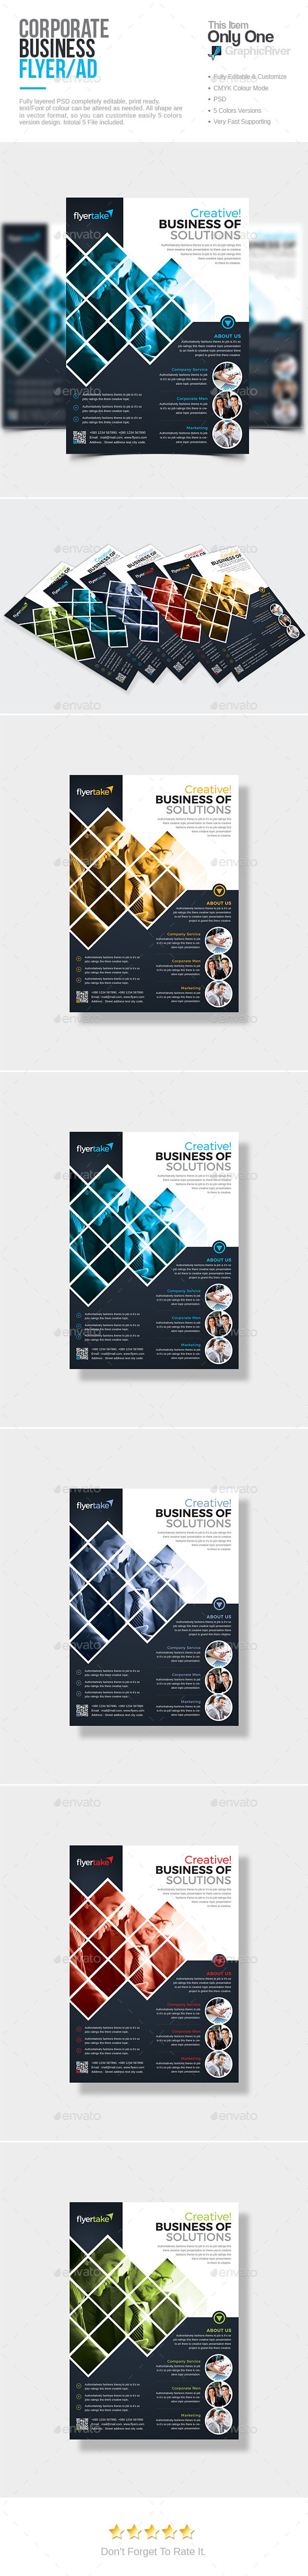 Corporate Flyer Template PSD. Download here: http://graphicriver.net/item/corporate-flyer/15582382?ref=ksioks